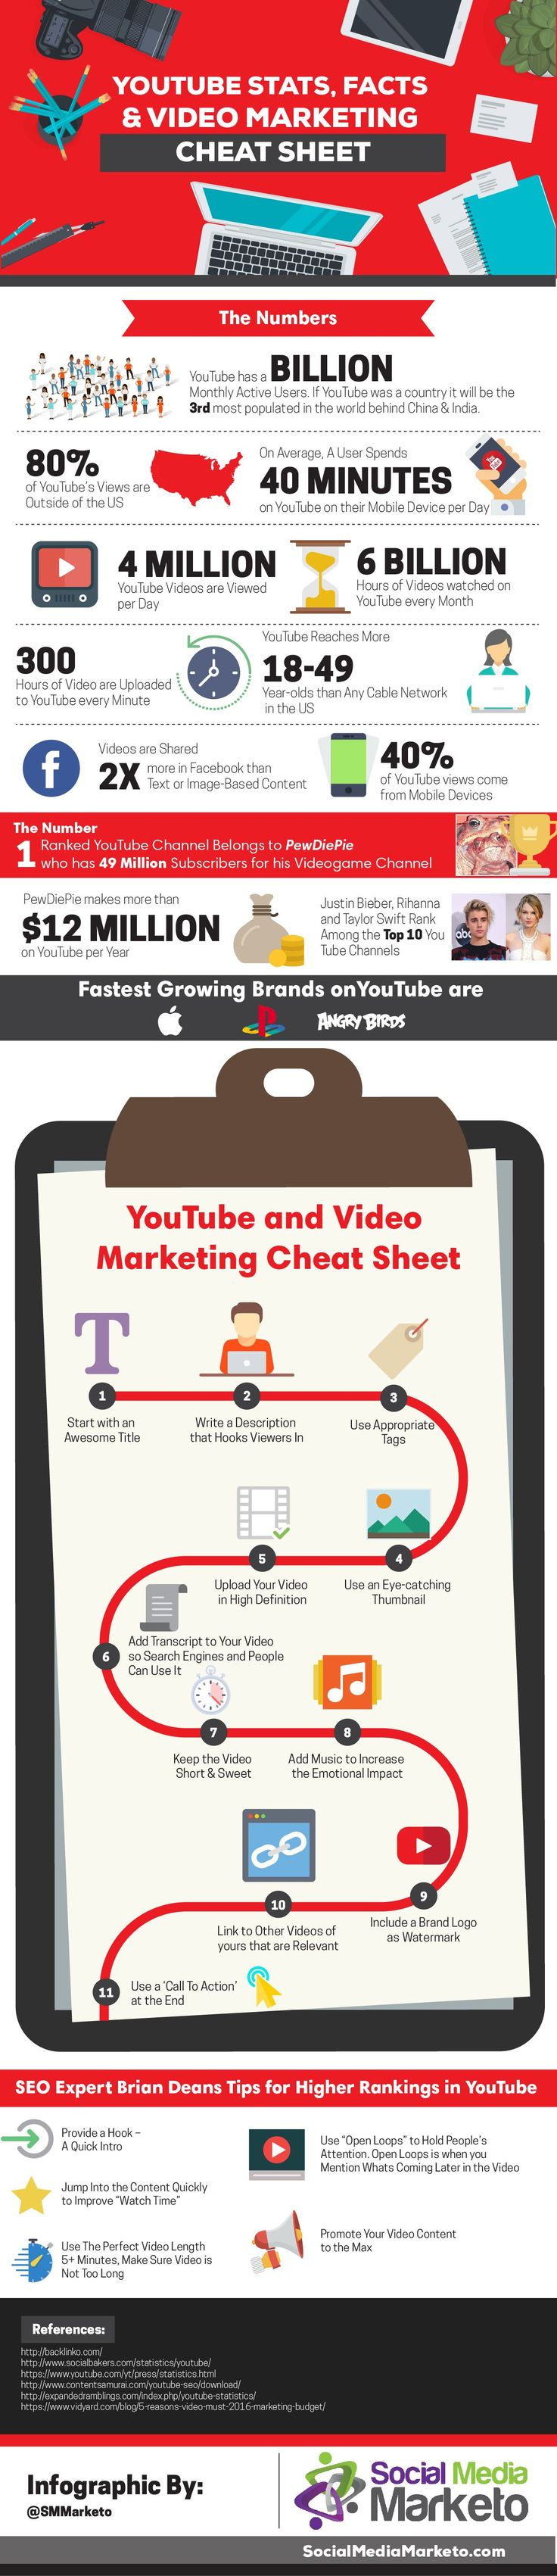 Music youtube free 80 - Download Youtube Stats Facts Video Marketing Cheat Sheet Infographic Facts Videomarketing Music Youtube Free 80